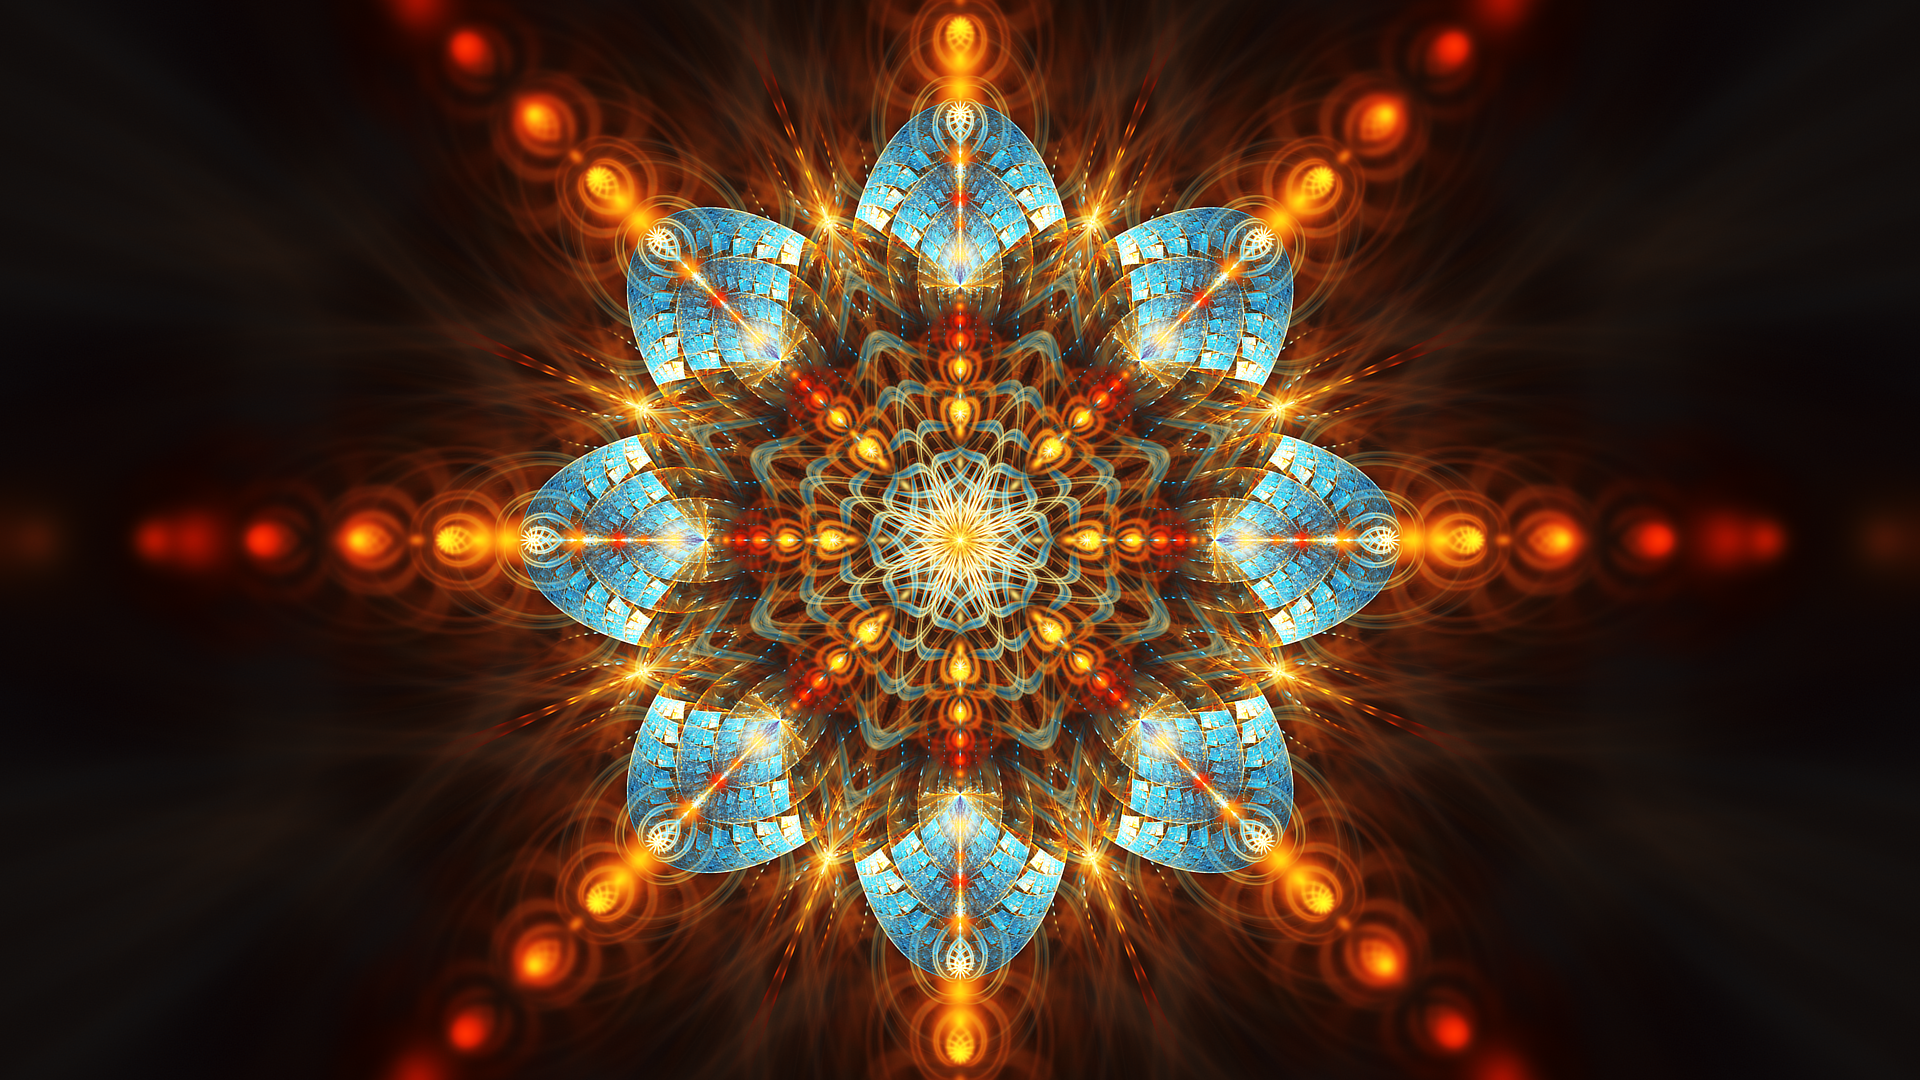 General 1920x1080 abstract fractal symmetry digital art fractal flowers